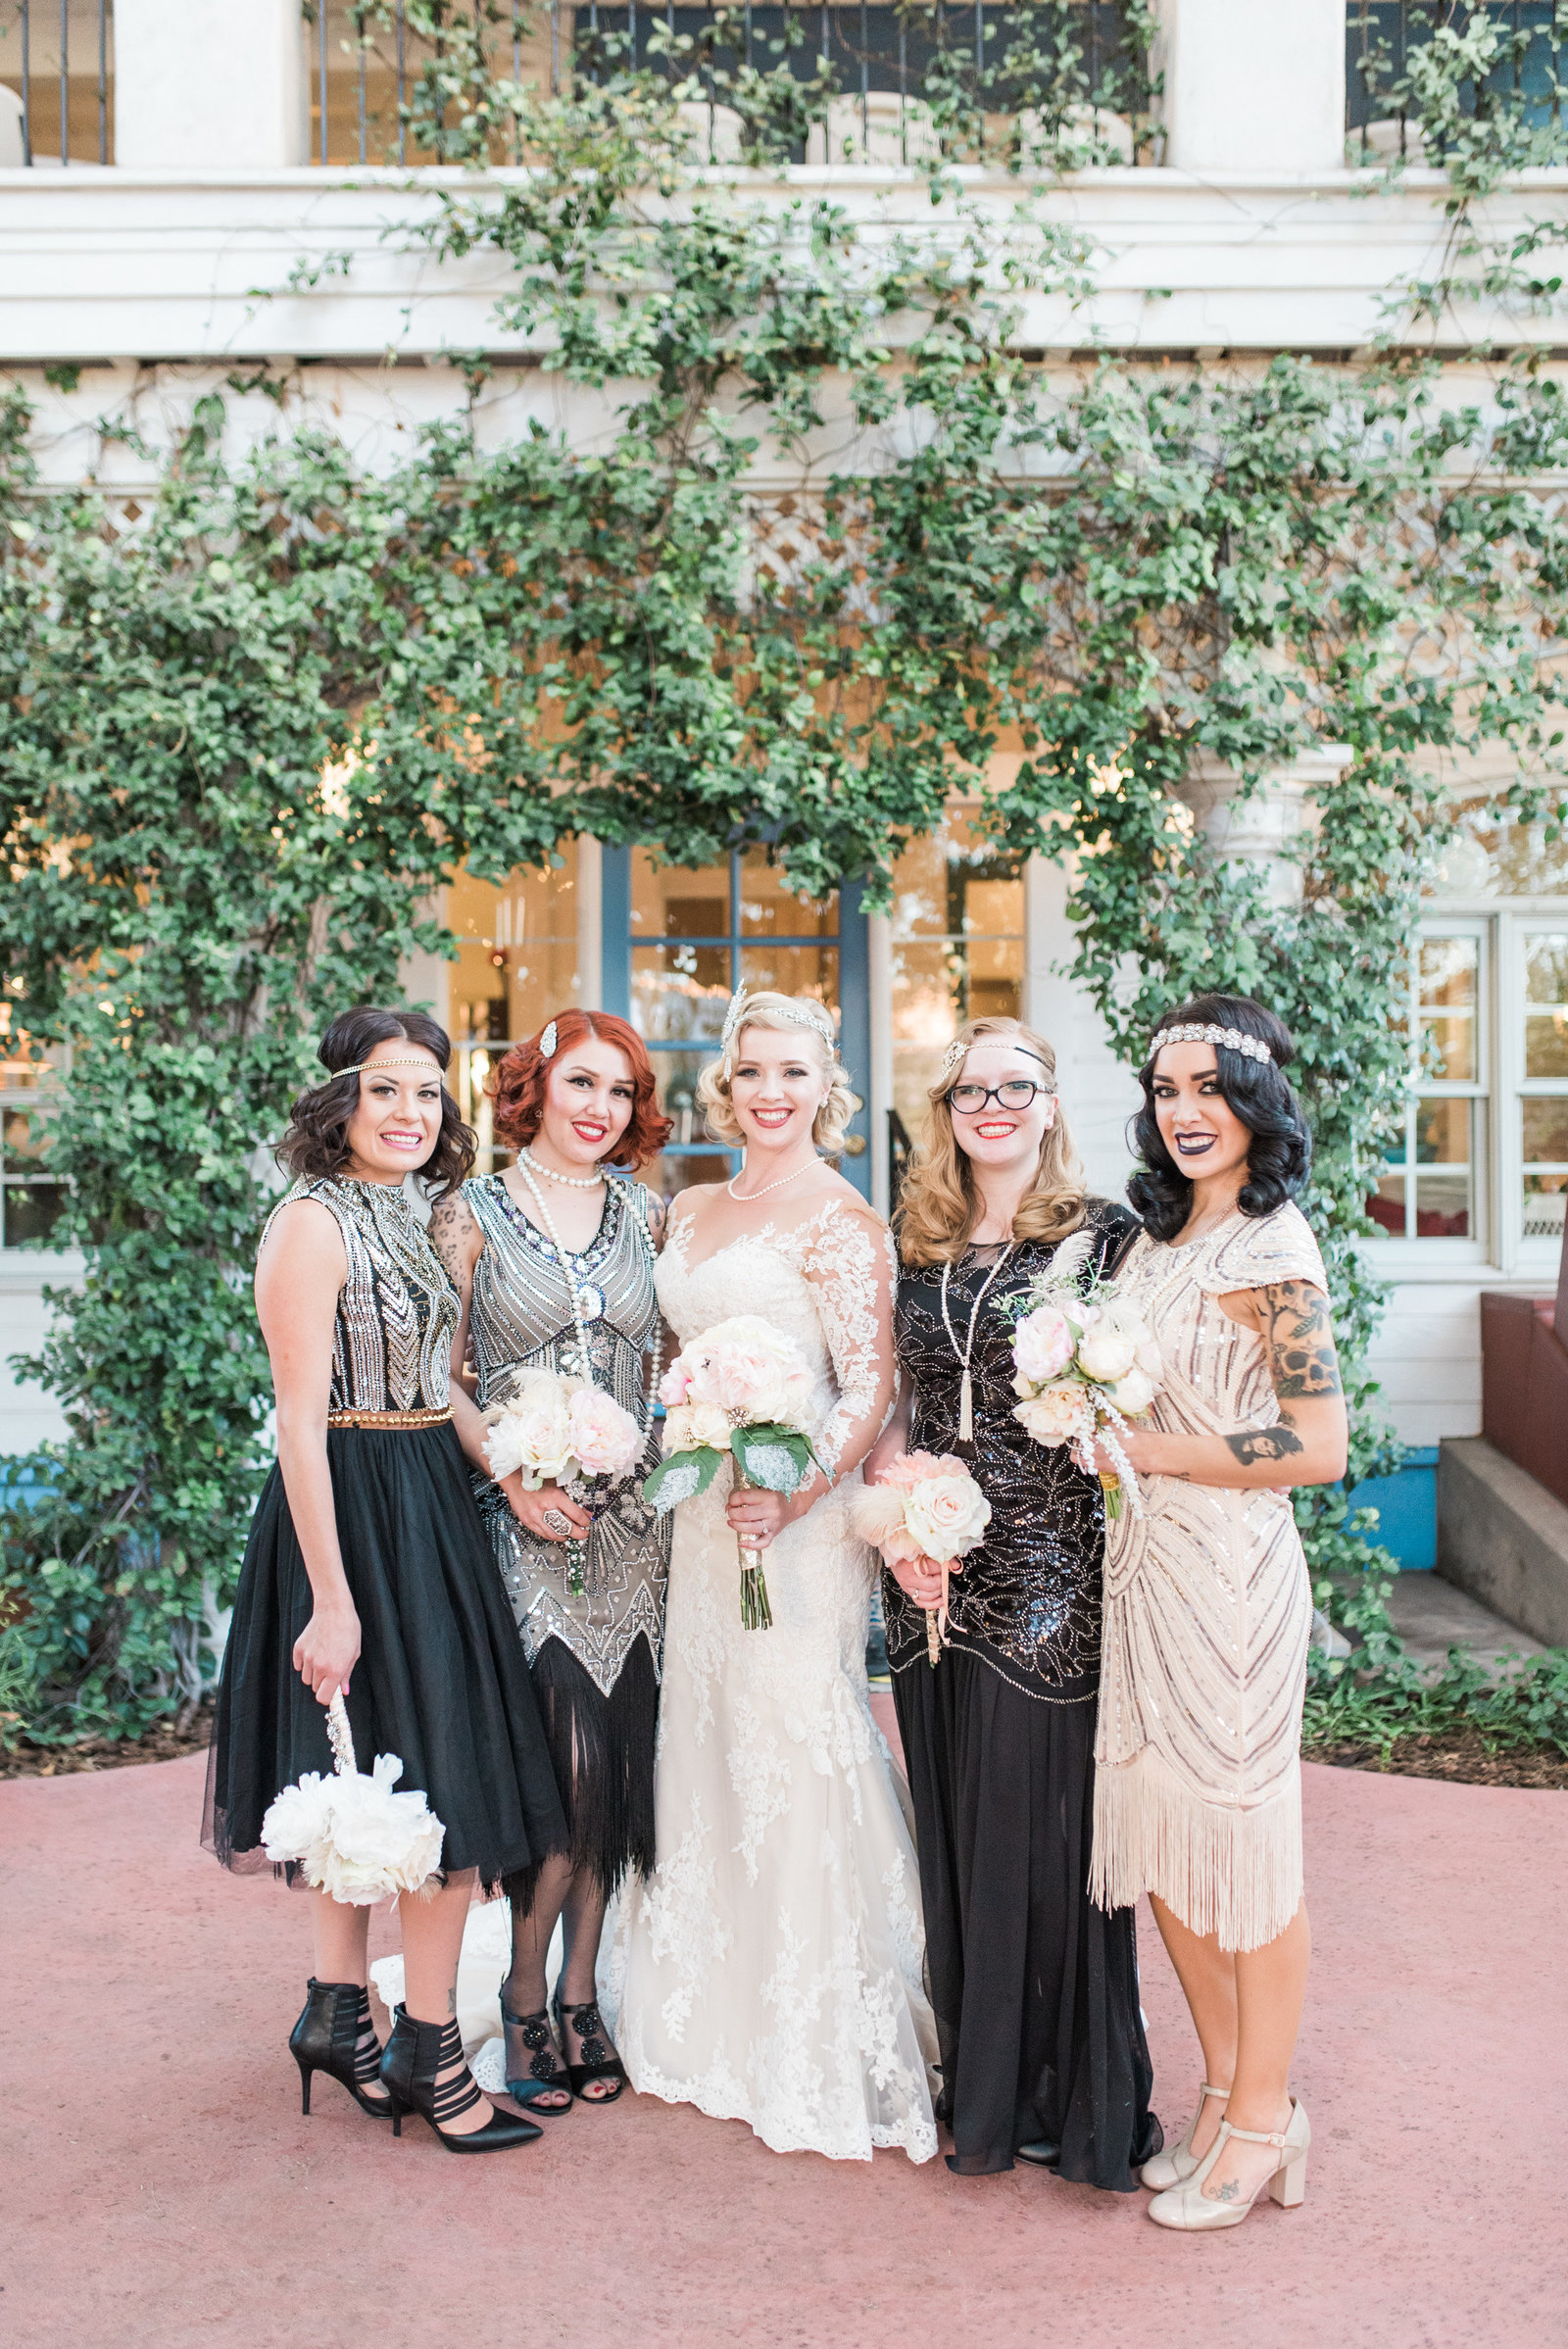 Downtown Tucson Z Mansion Vintage Wedding Photo of Bride and Bridesmaids | Tucson Wedding Photographer | West End Photography